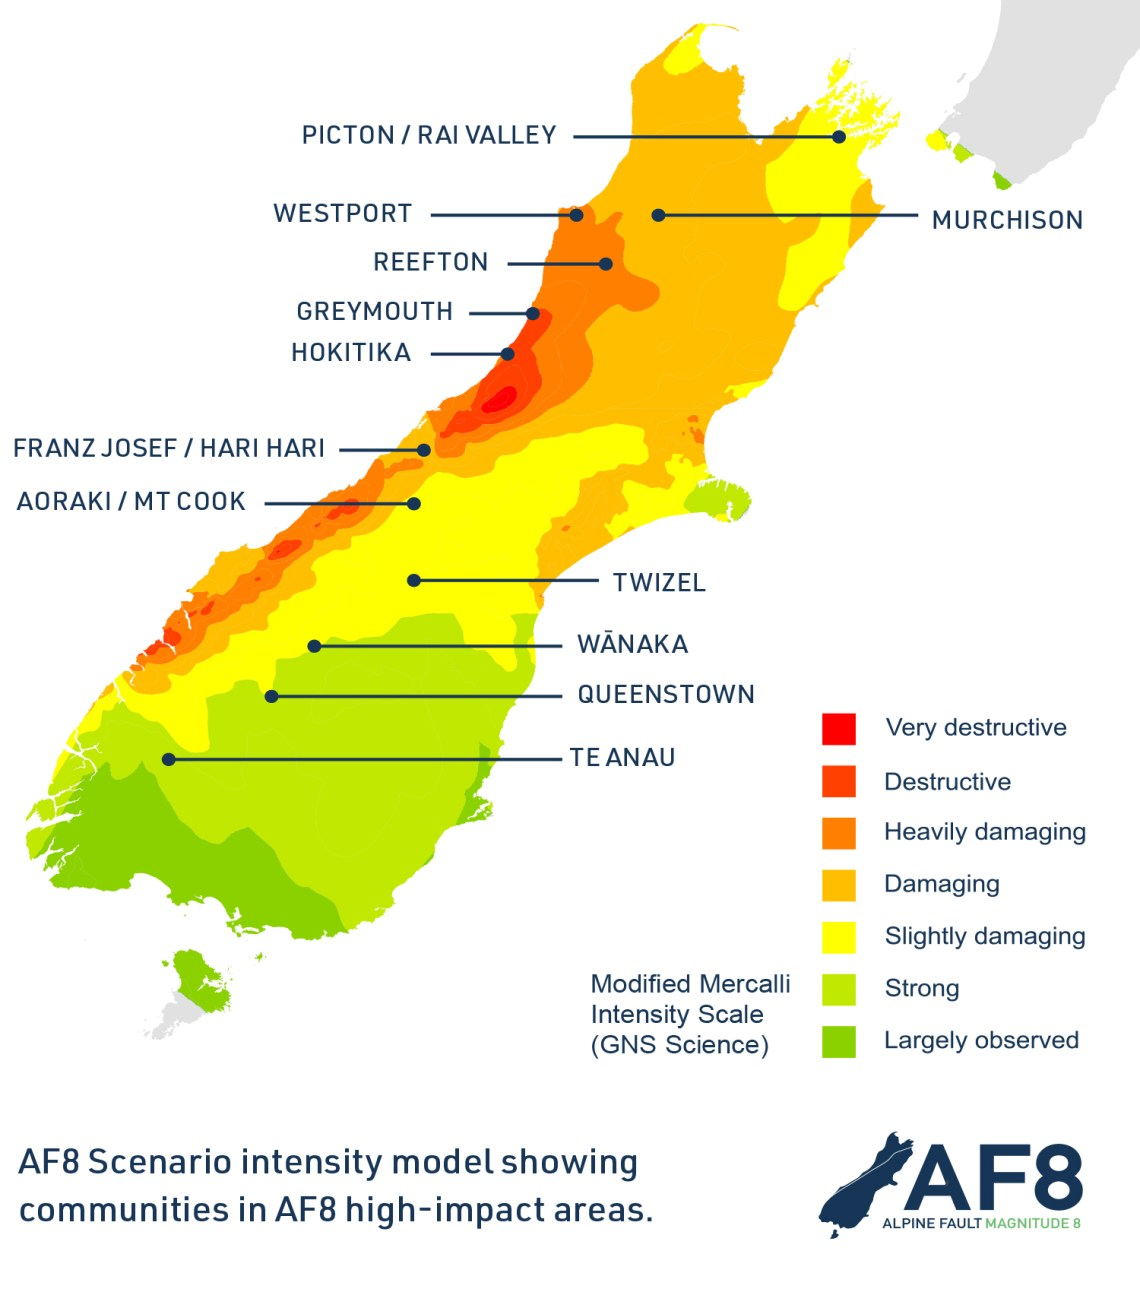 AF8 Roadshow Intensity Map